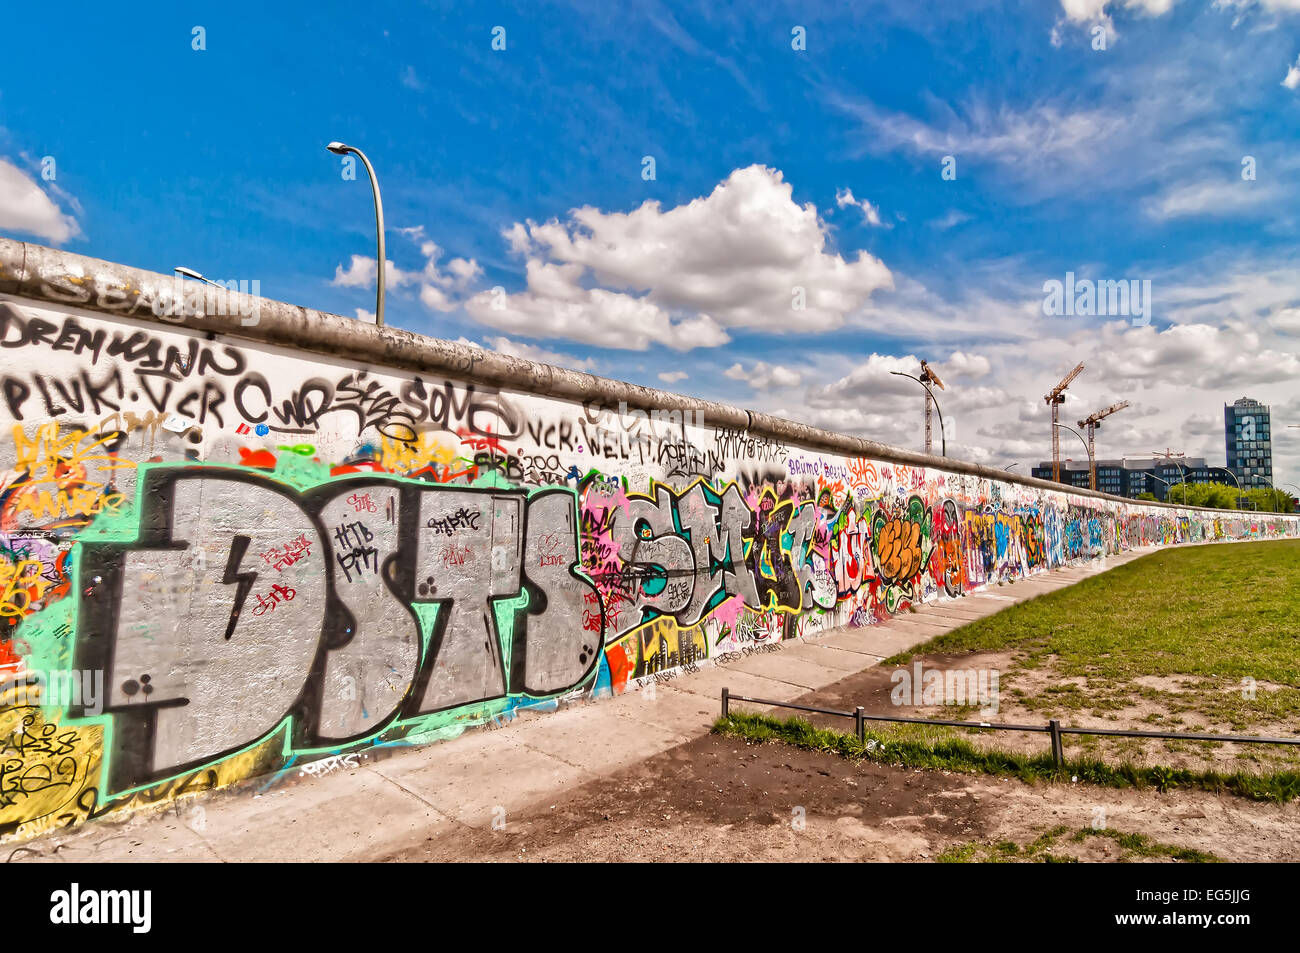 BERLIN, GERMANY - June 10, 2013: memorable segment of the Wall Berliner Mauer from communist history, which collapsed - Stock Image